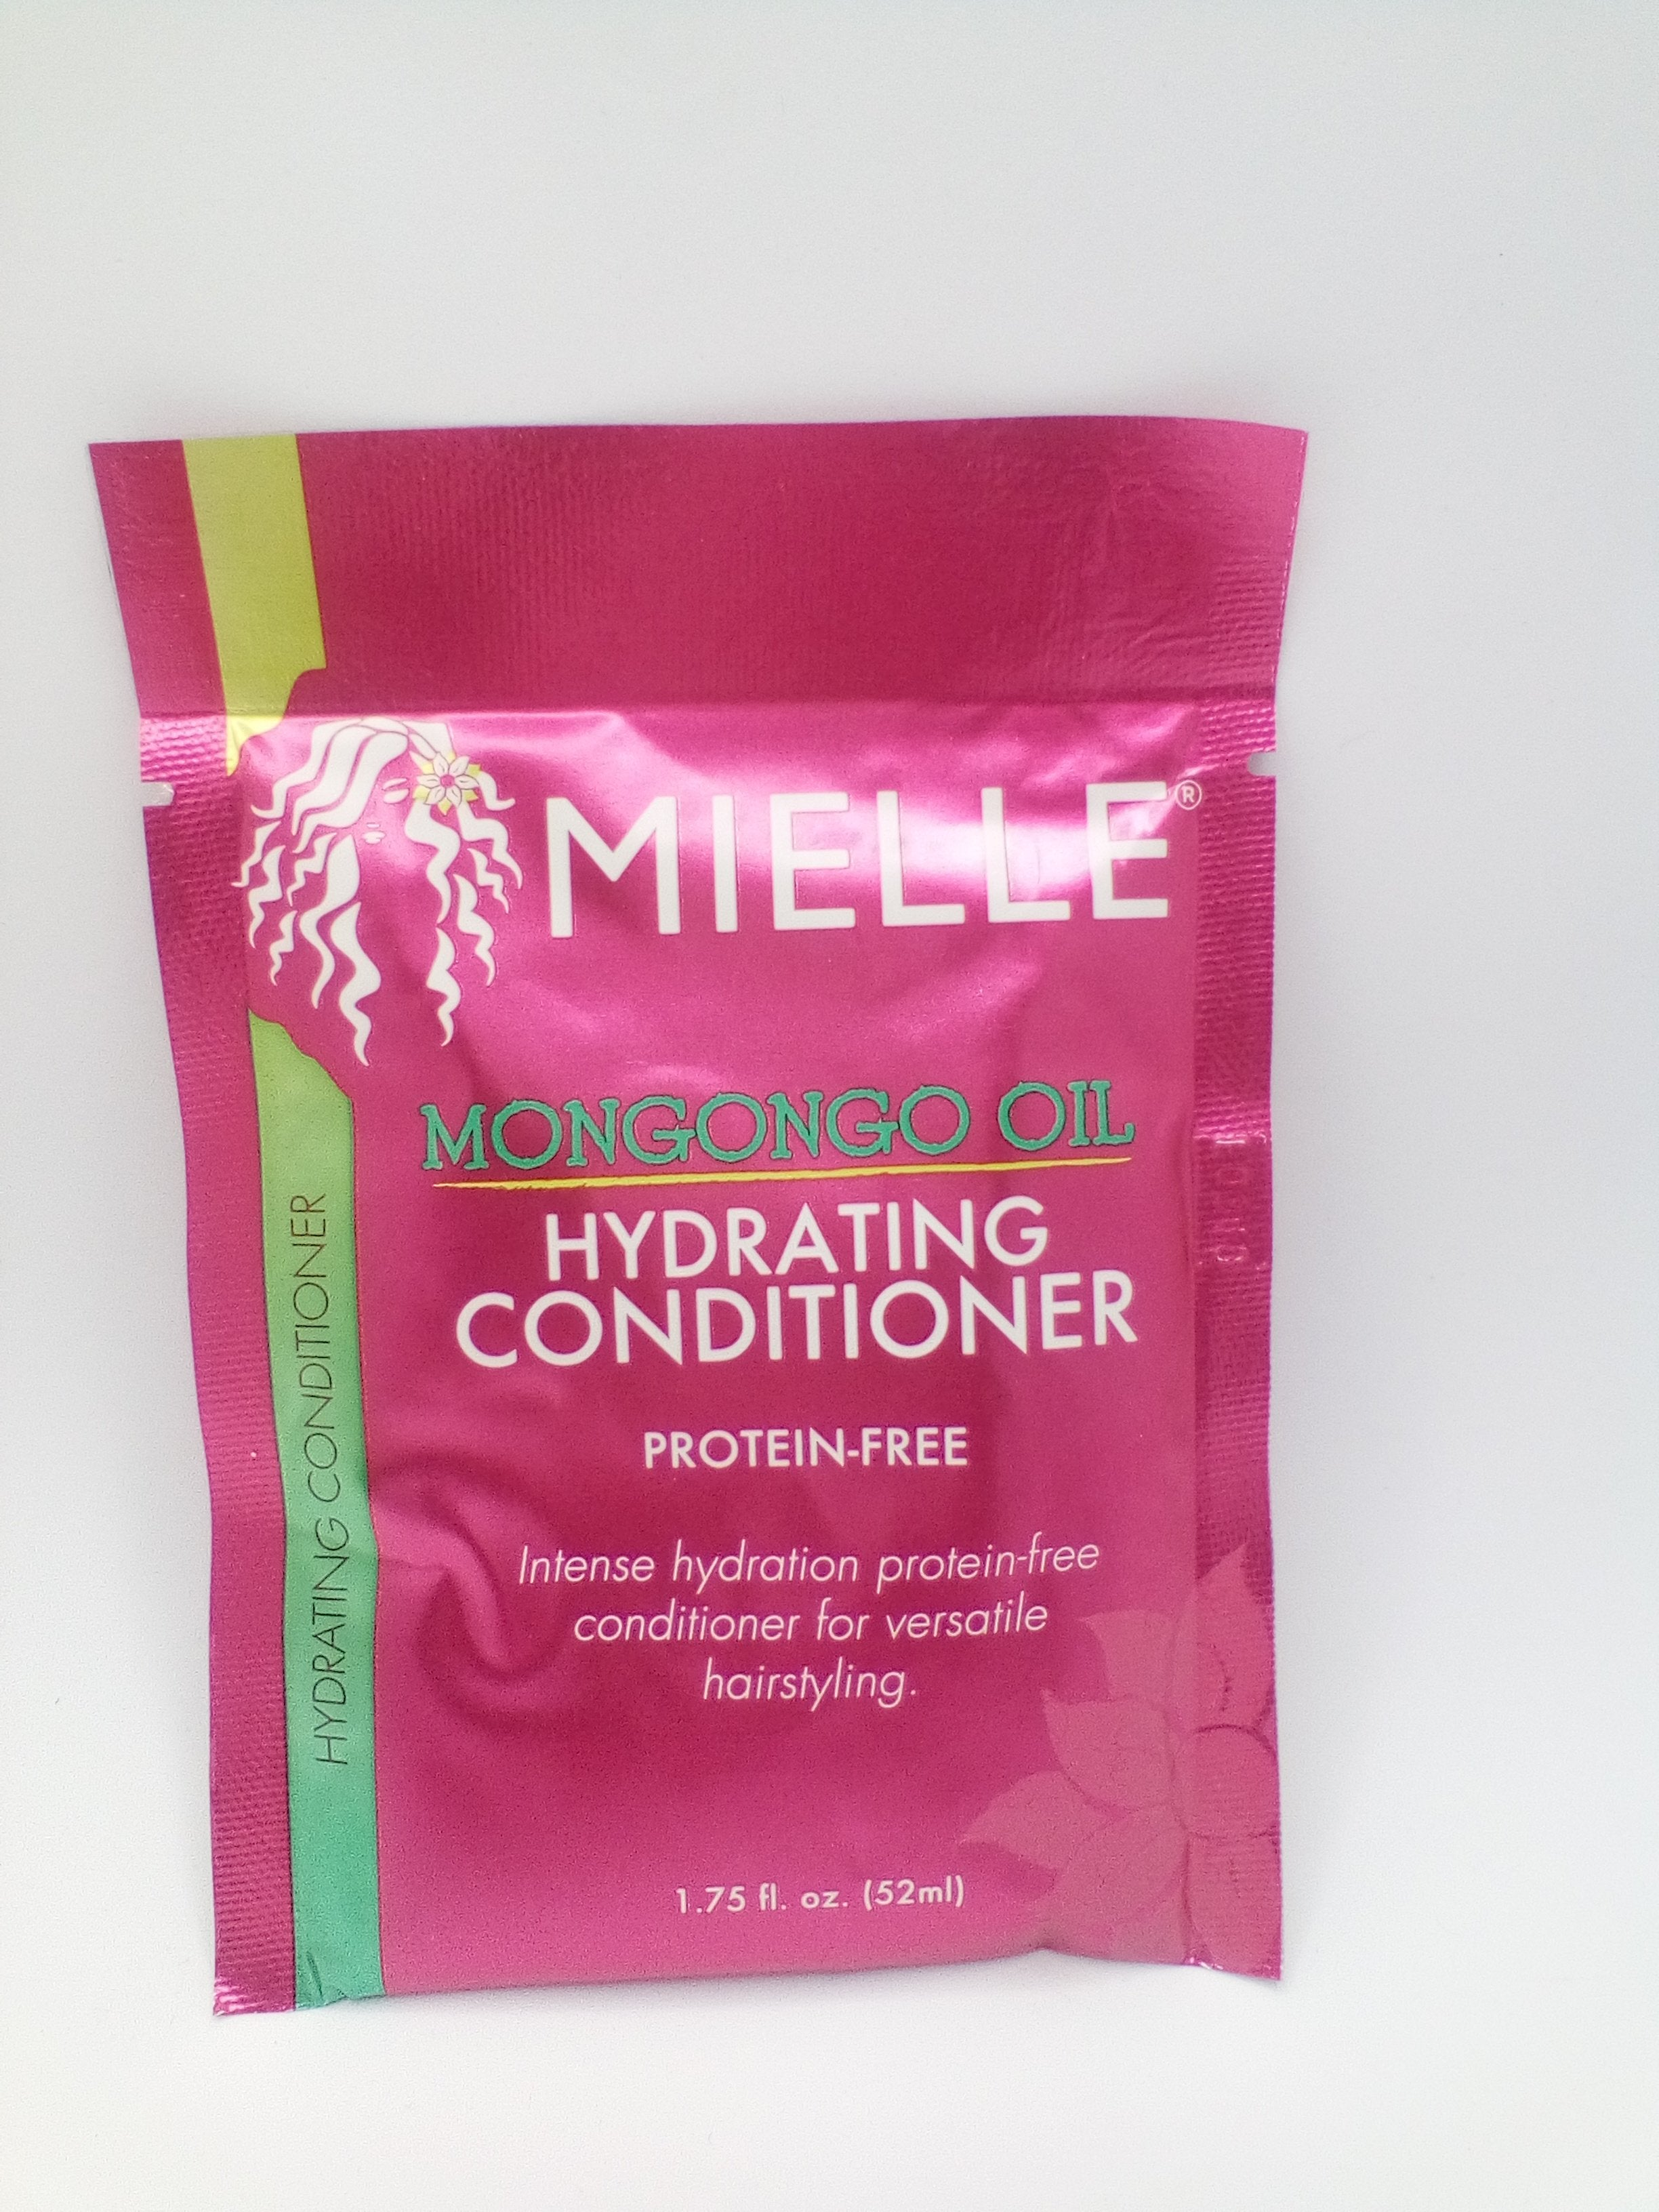 Mielle Mongongo Oil Hydrating Conditioner Sample Pack - Blacktivity Beauty Supply